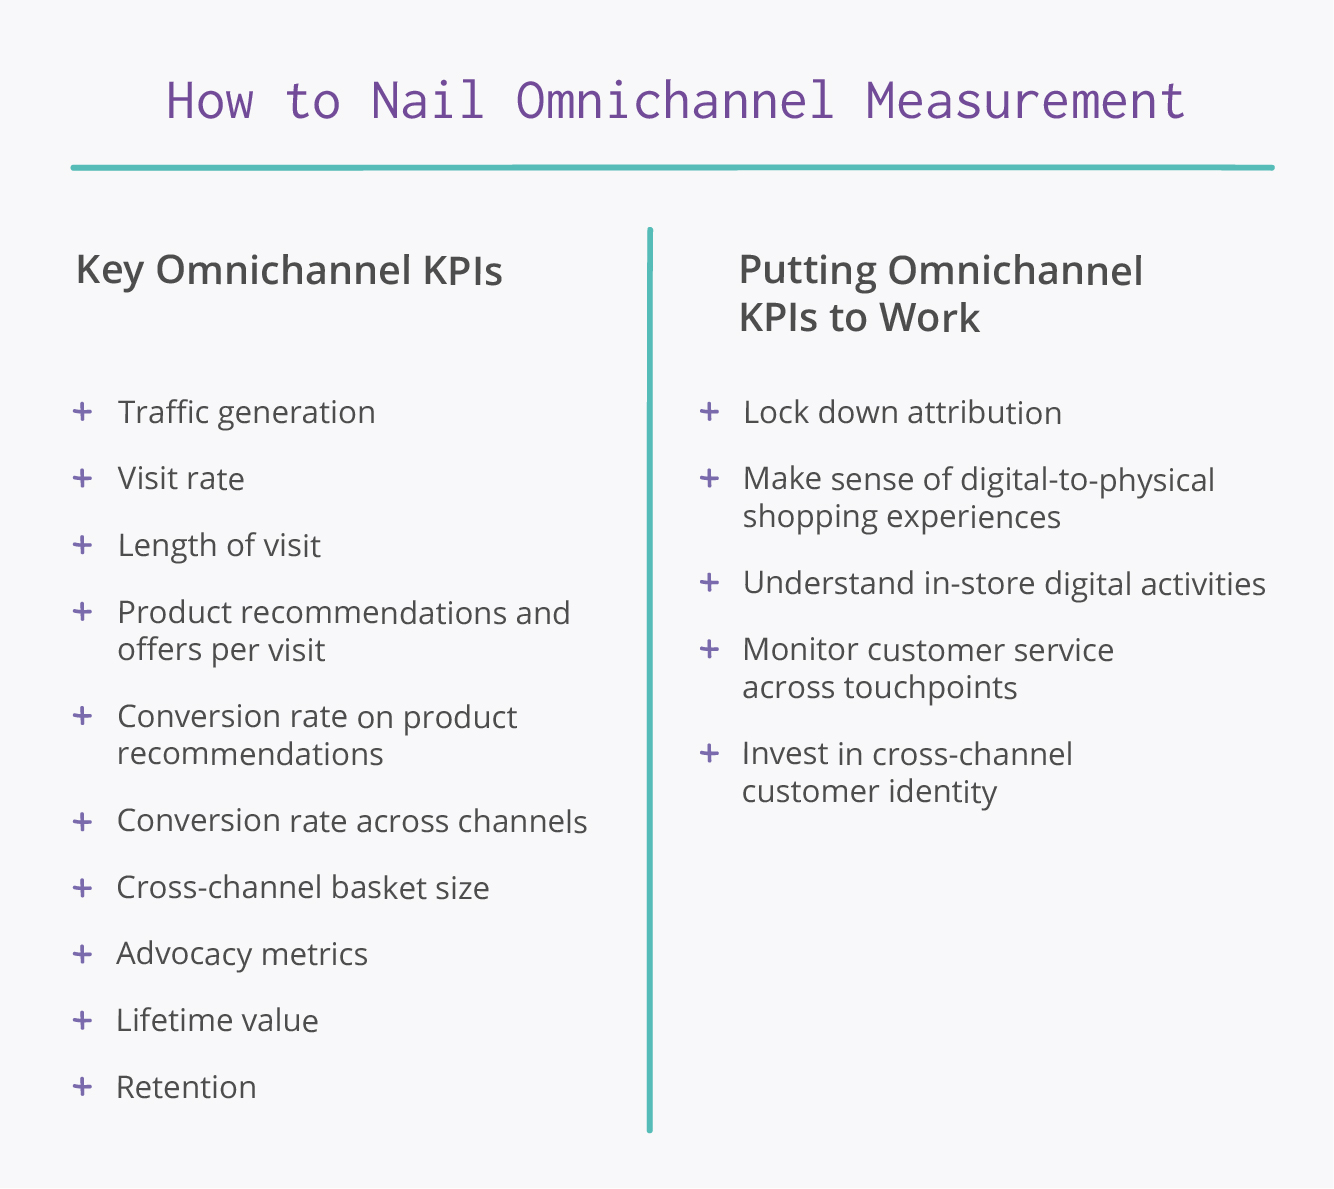 how to nail omnichannel measurement